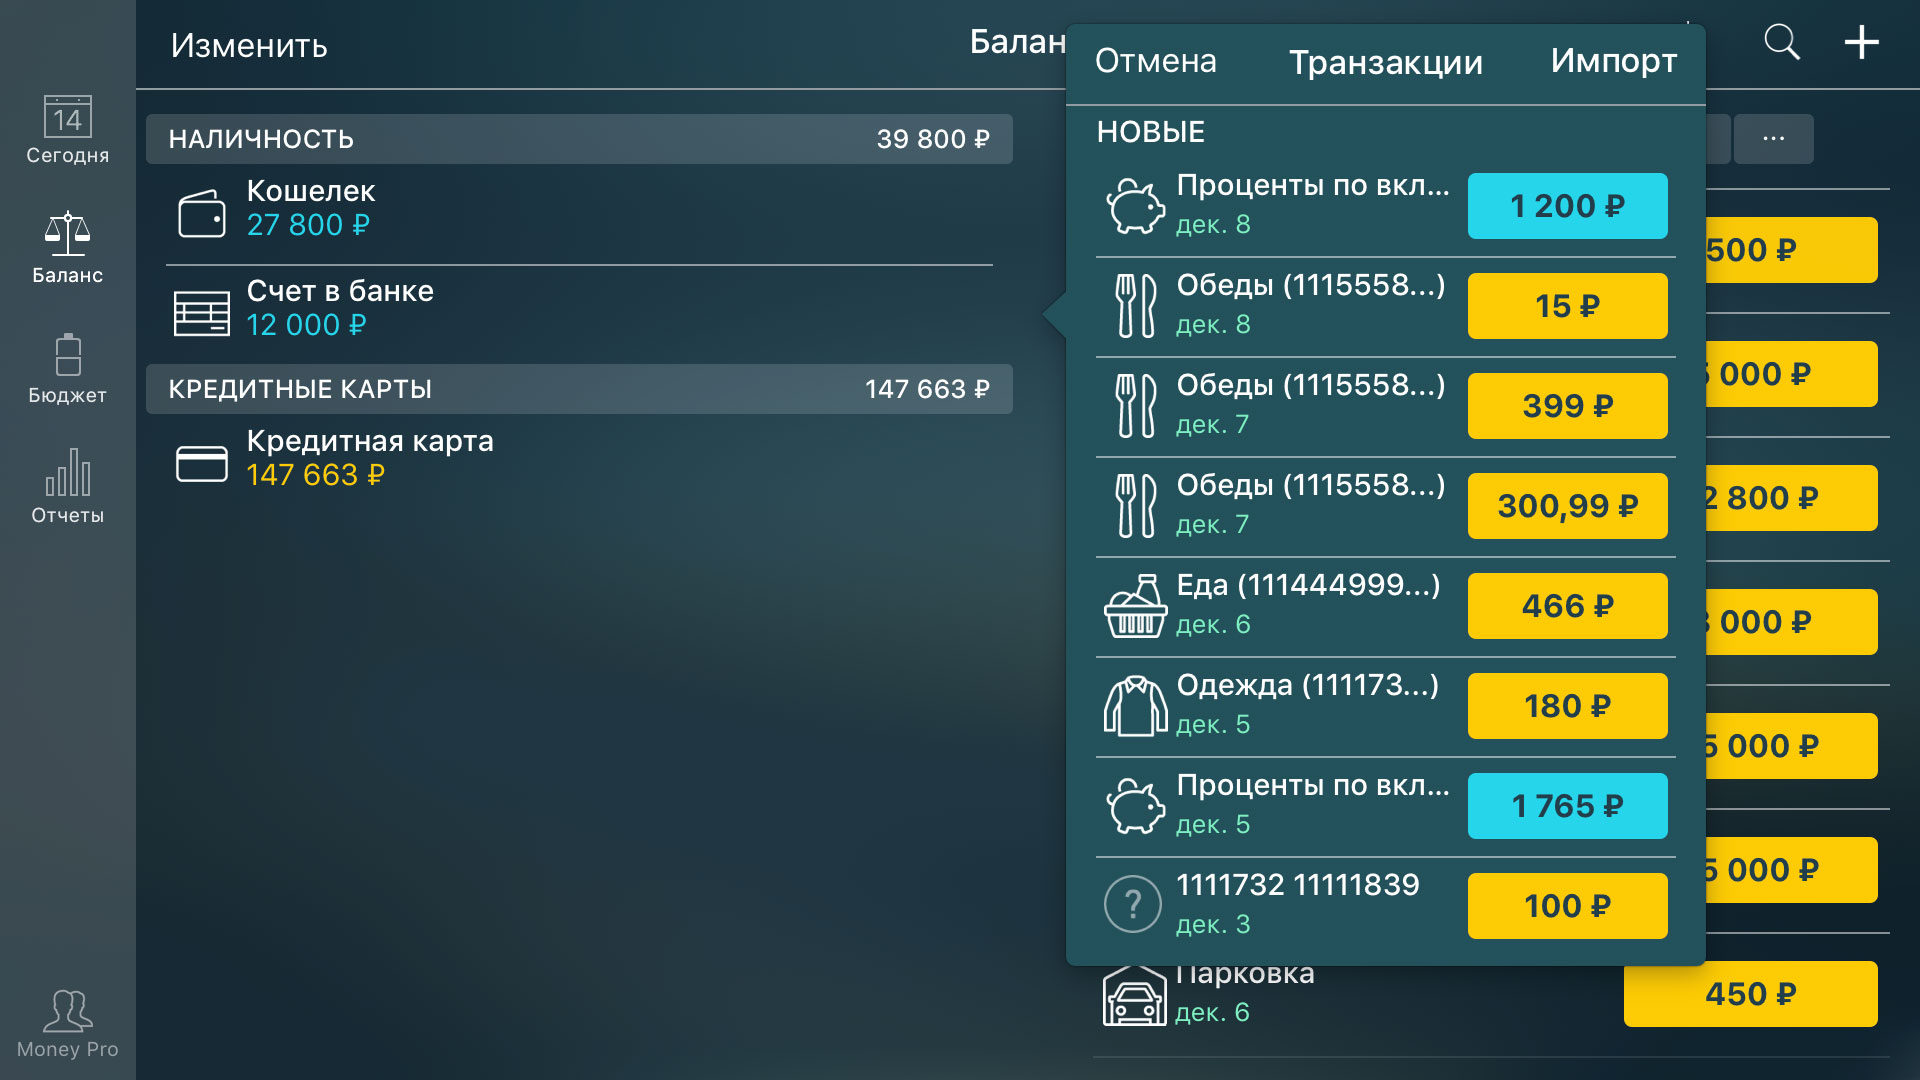 Money Pro - Импорт (iOS, Mac, Android) - Mac